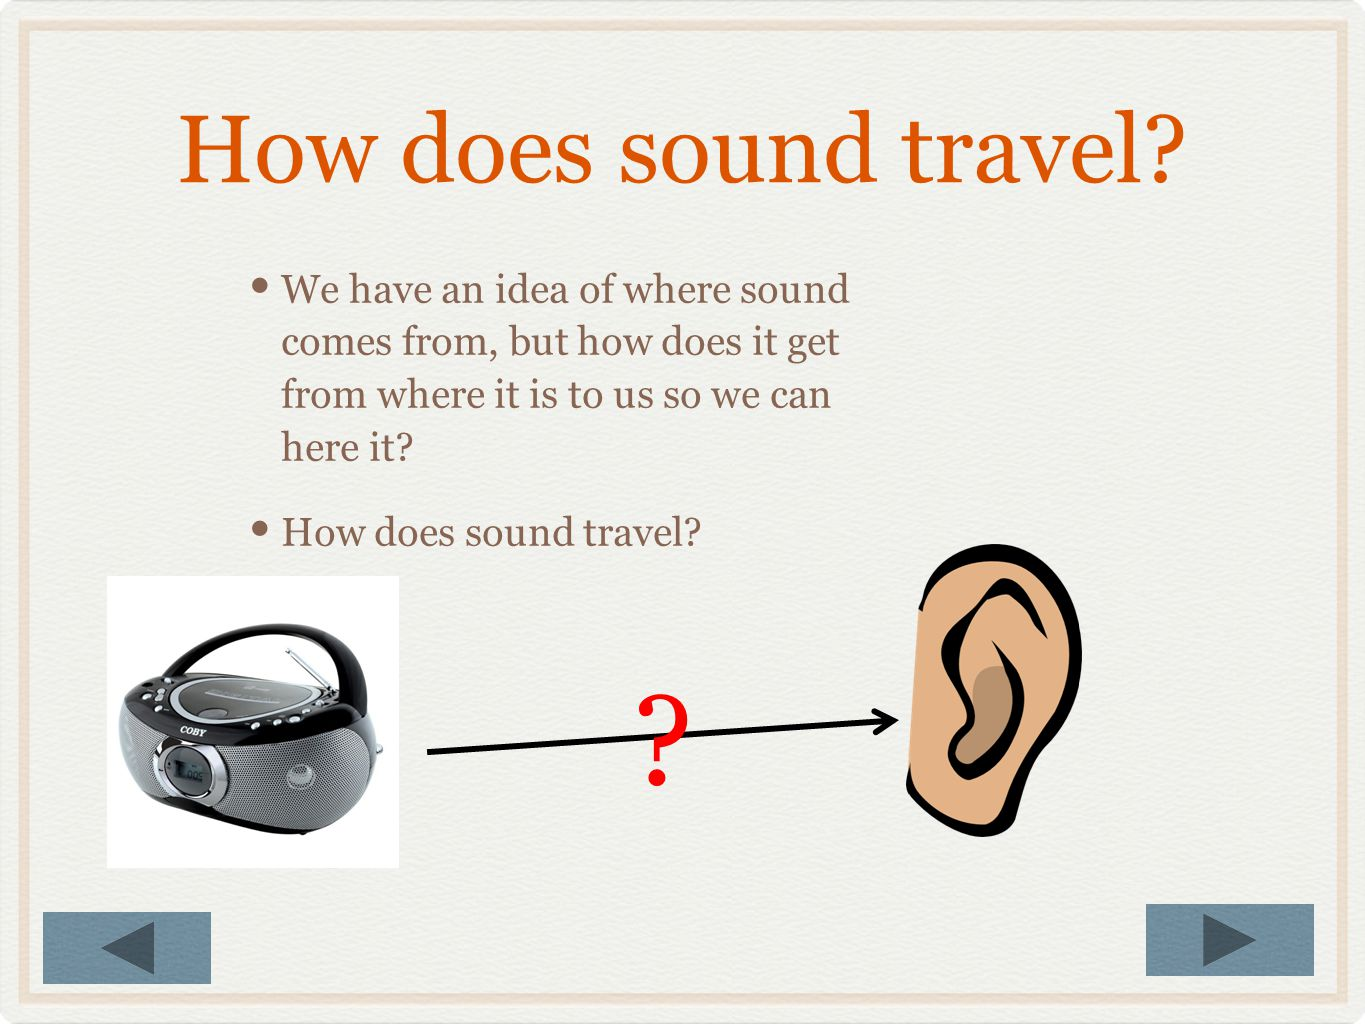 How does sound travel We have an idea of where sound comes from, but how does it get from where it is to us so we can here it